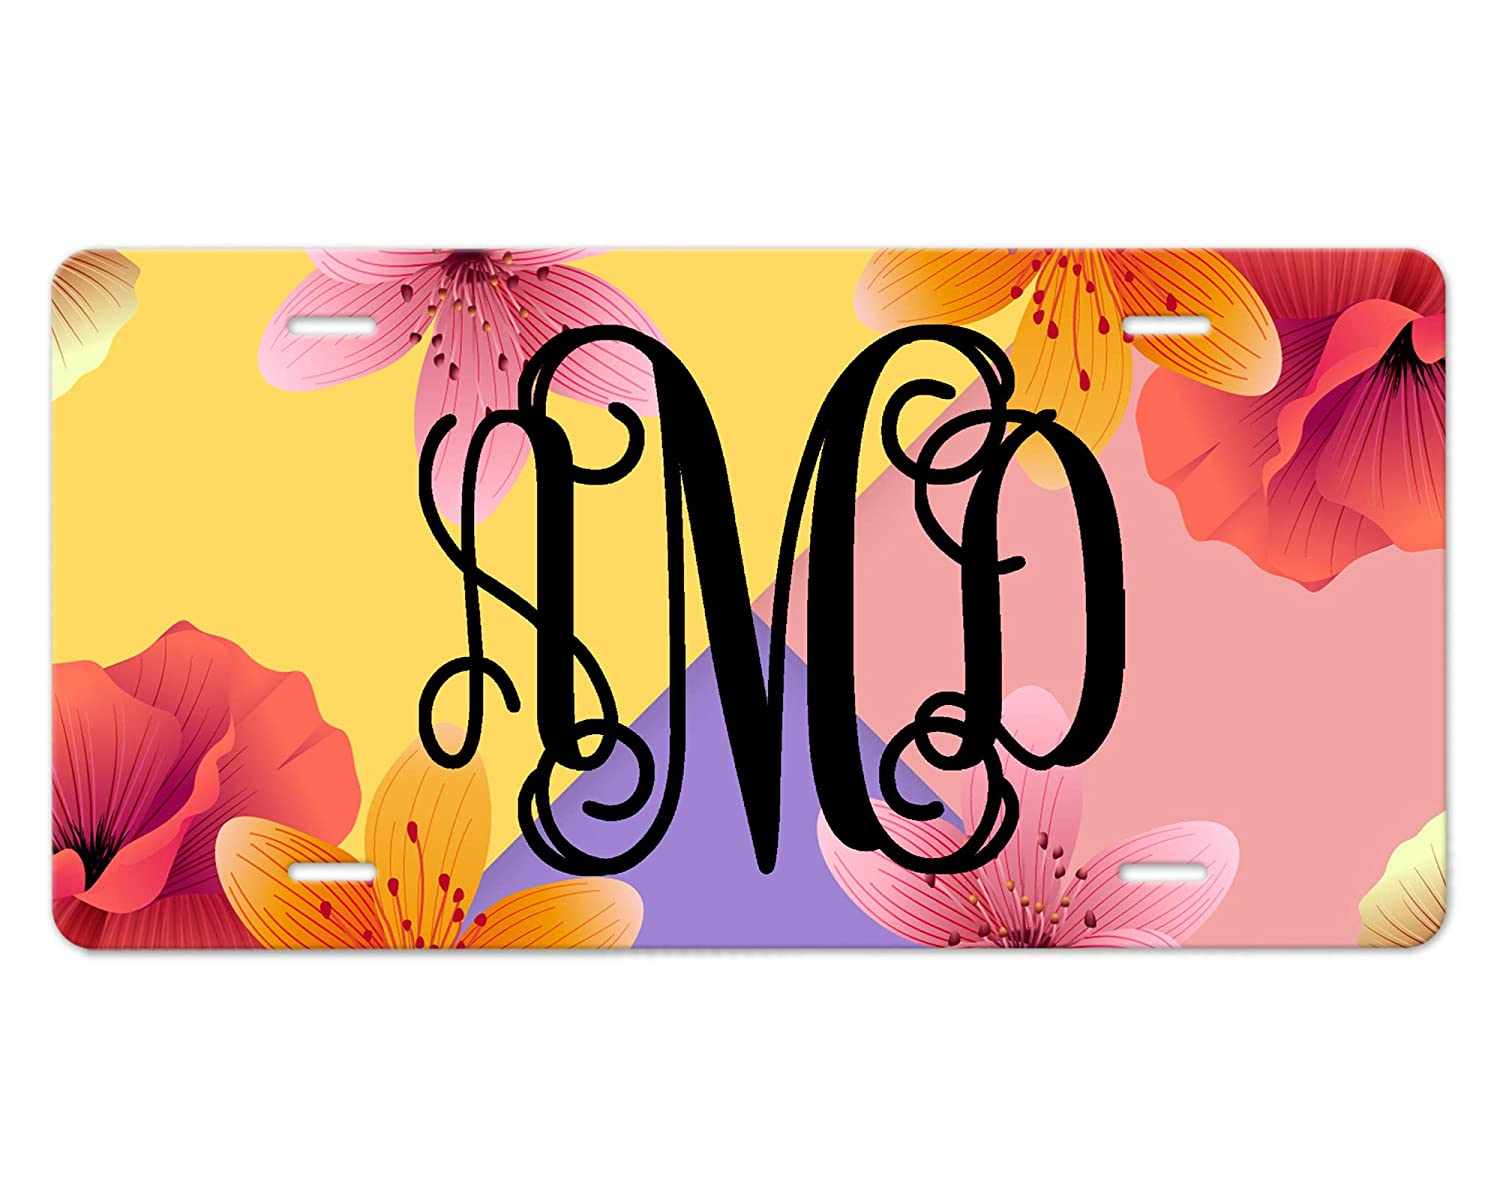 Max 84% OFF Customizable Monogram Front Car Tag Design Purple Yell Topics on TV Floral -